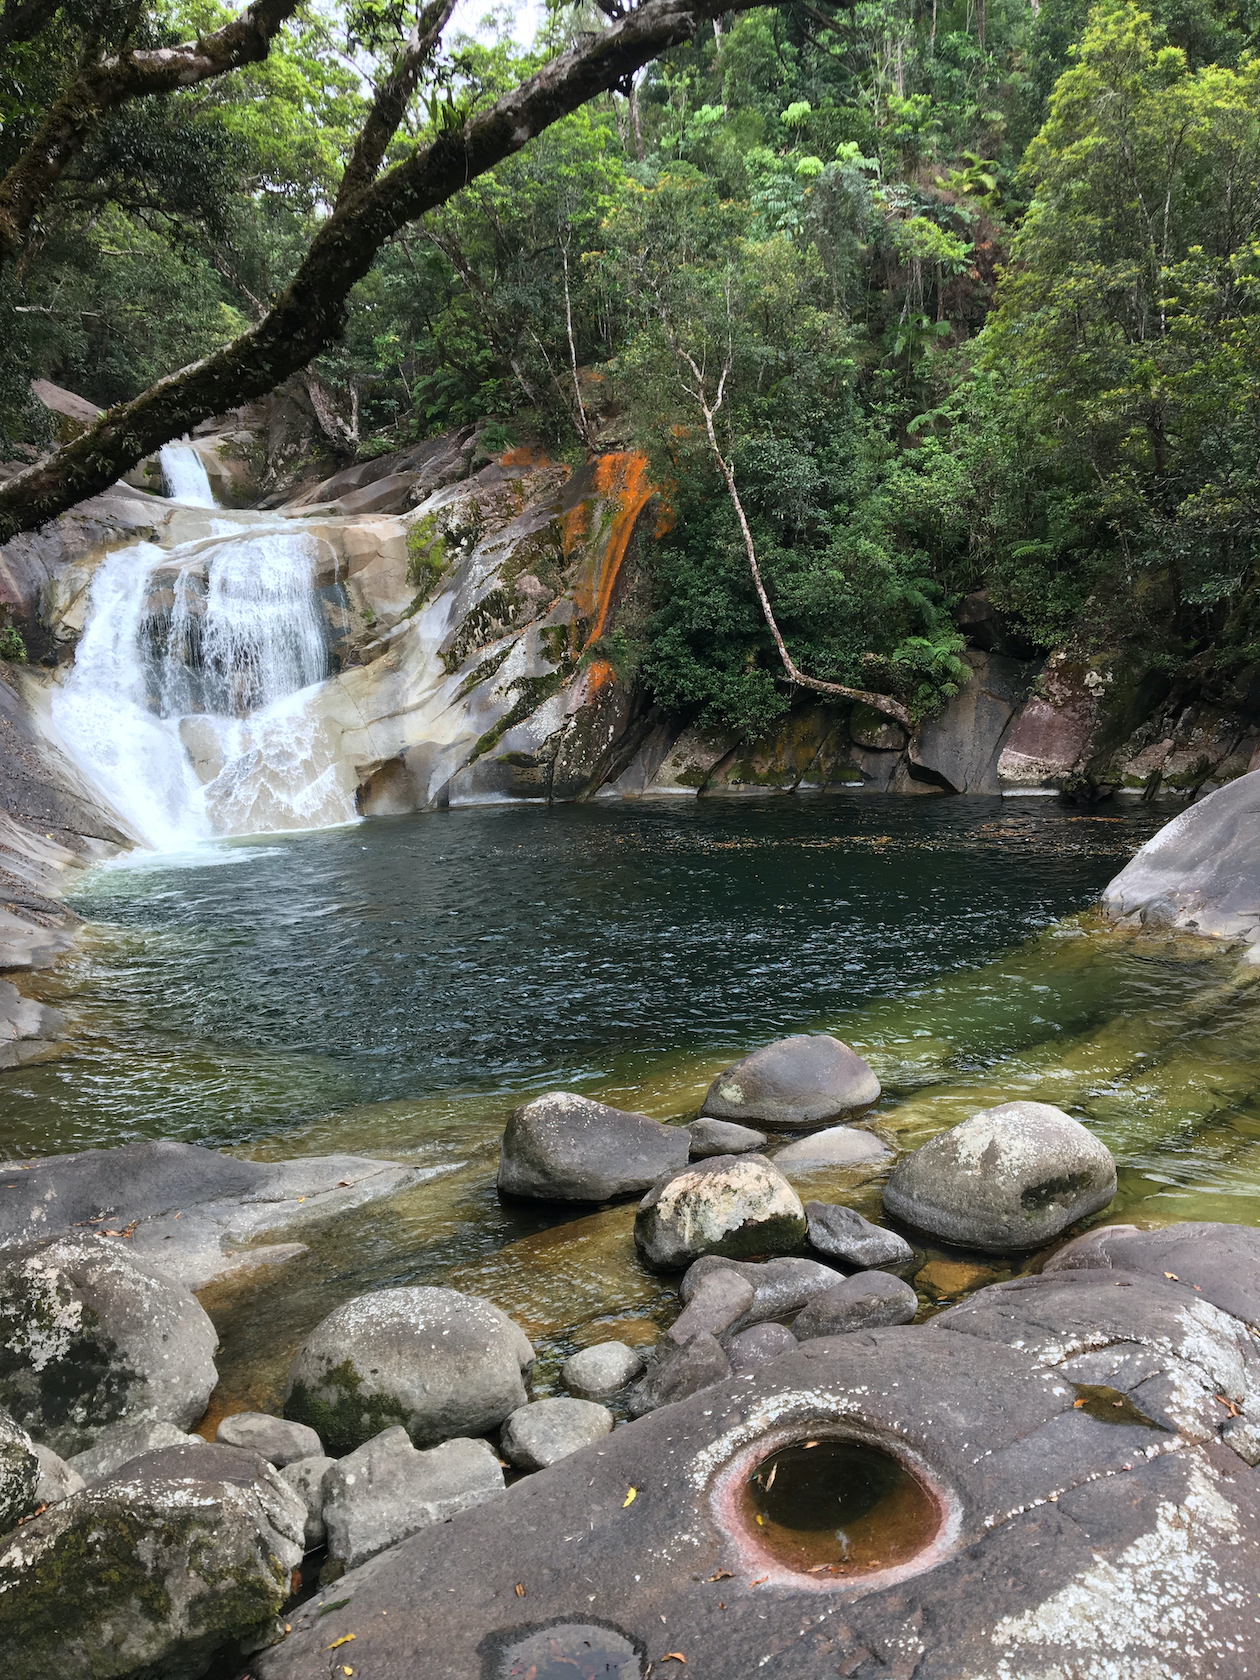 Josephine Falls outside Cairns